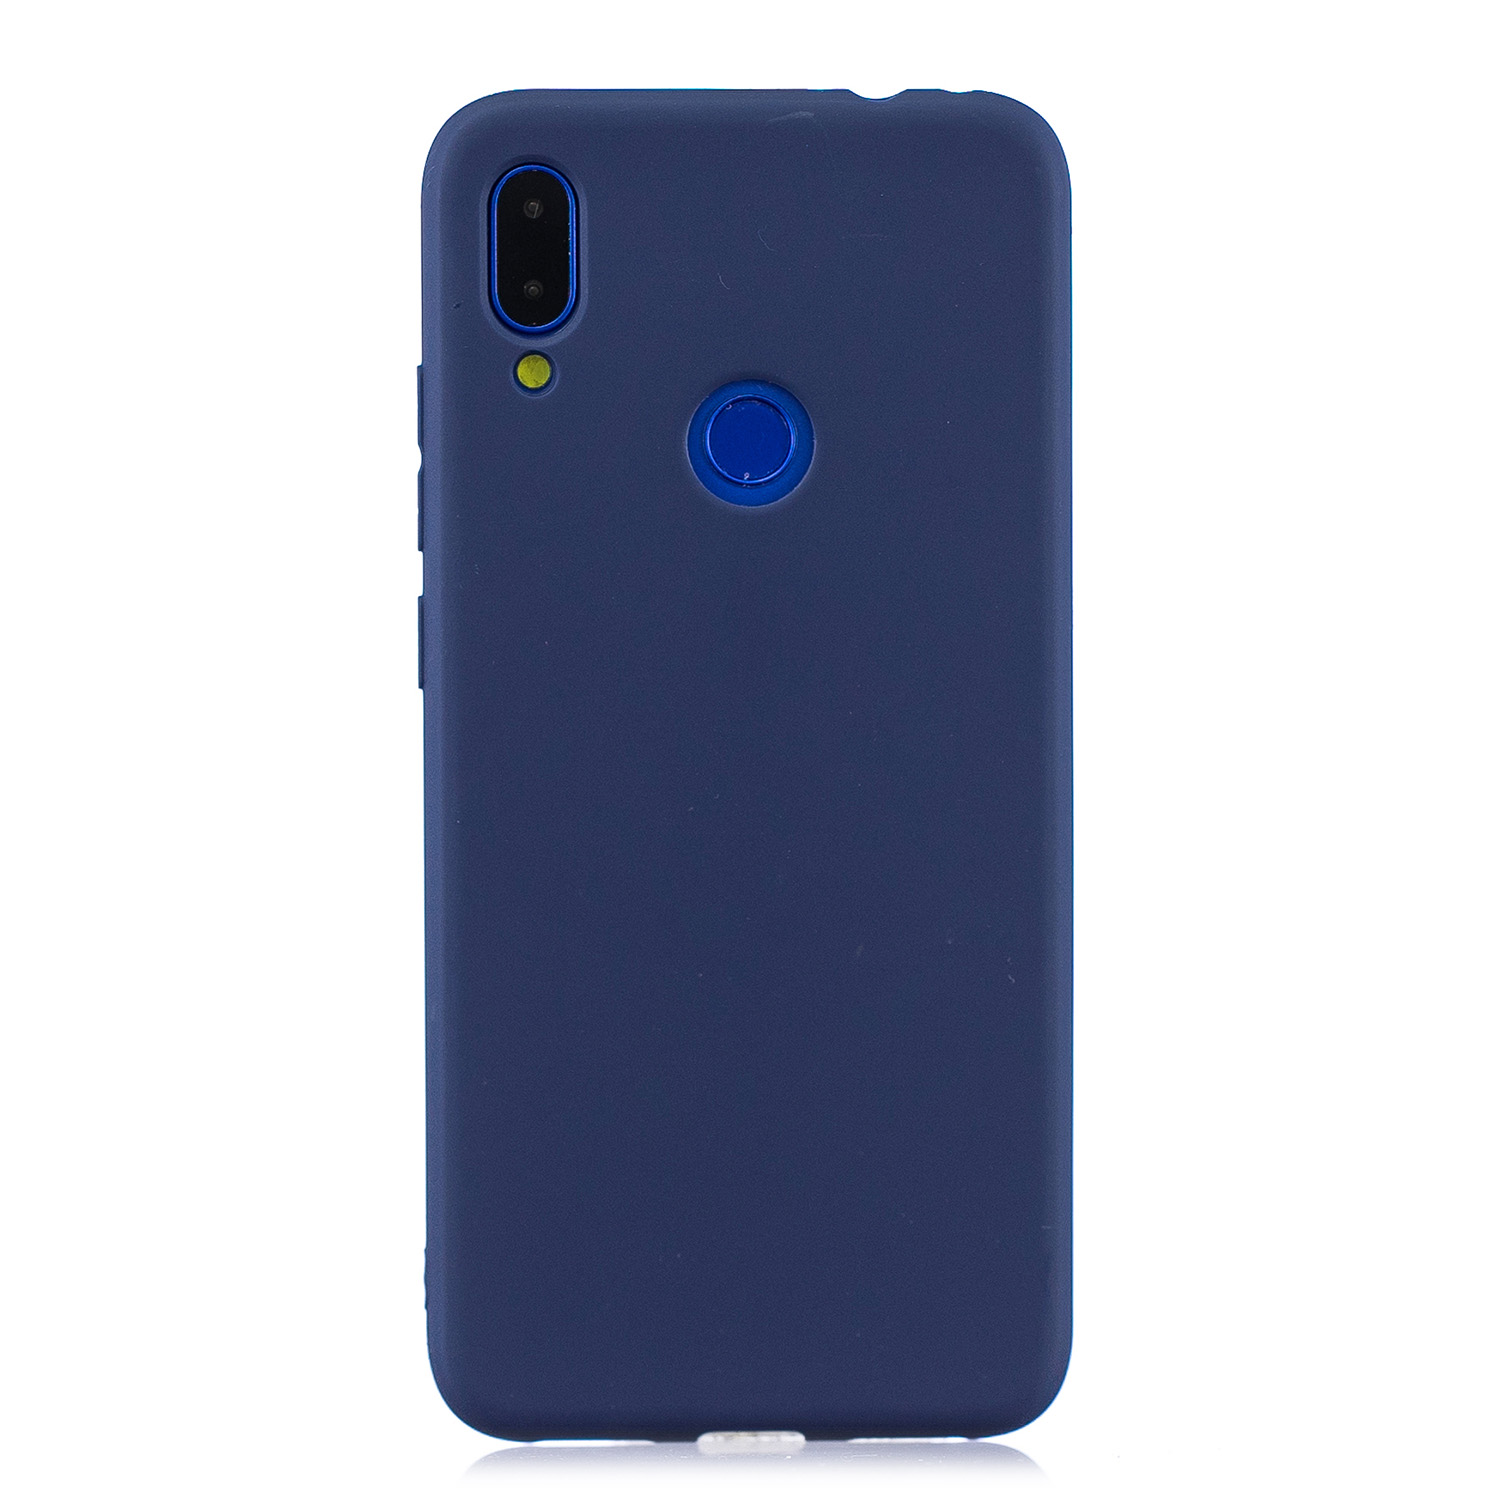 For Redmi 7 Lovely Candy Color Matte TPU Anti-scratch Non-slip Protective Cover Back Case Navy